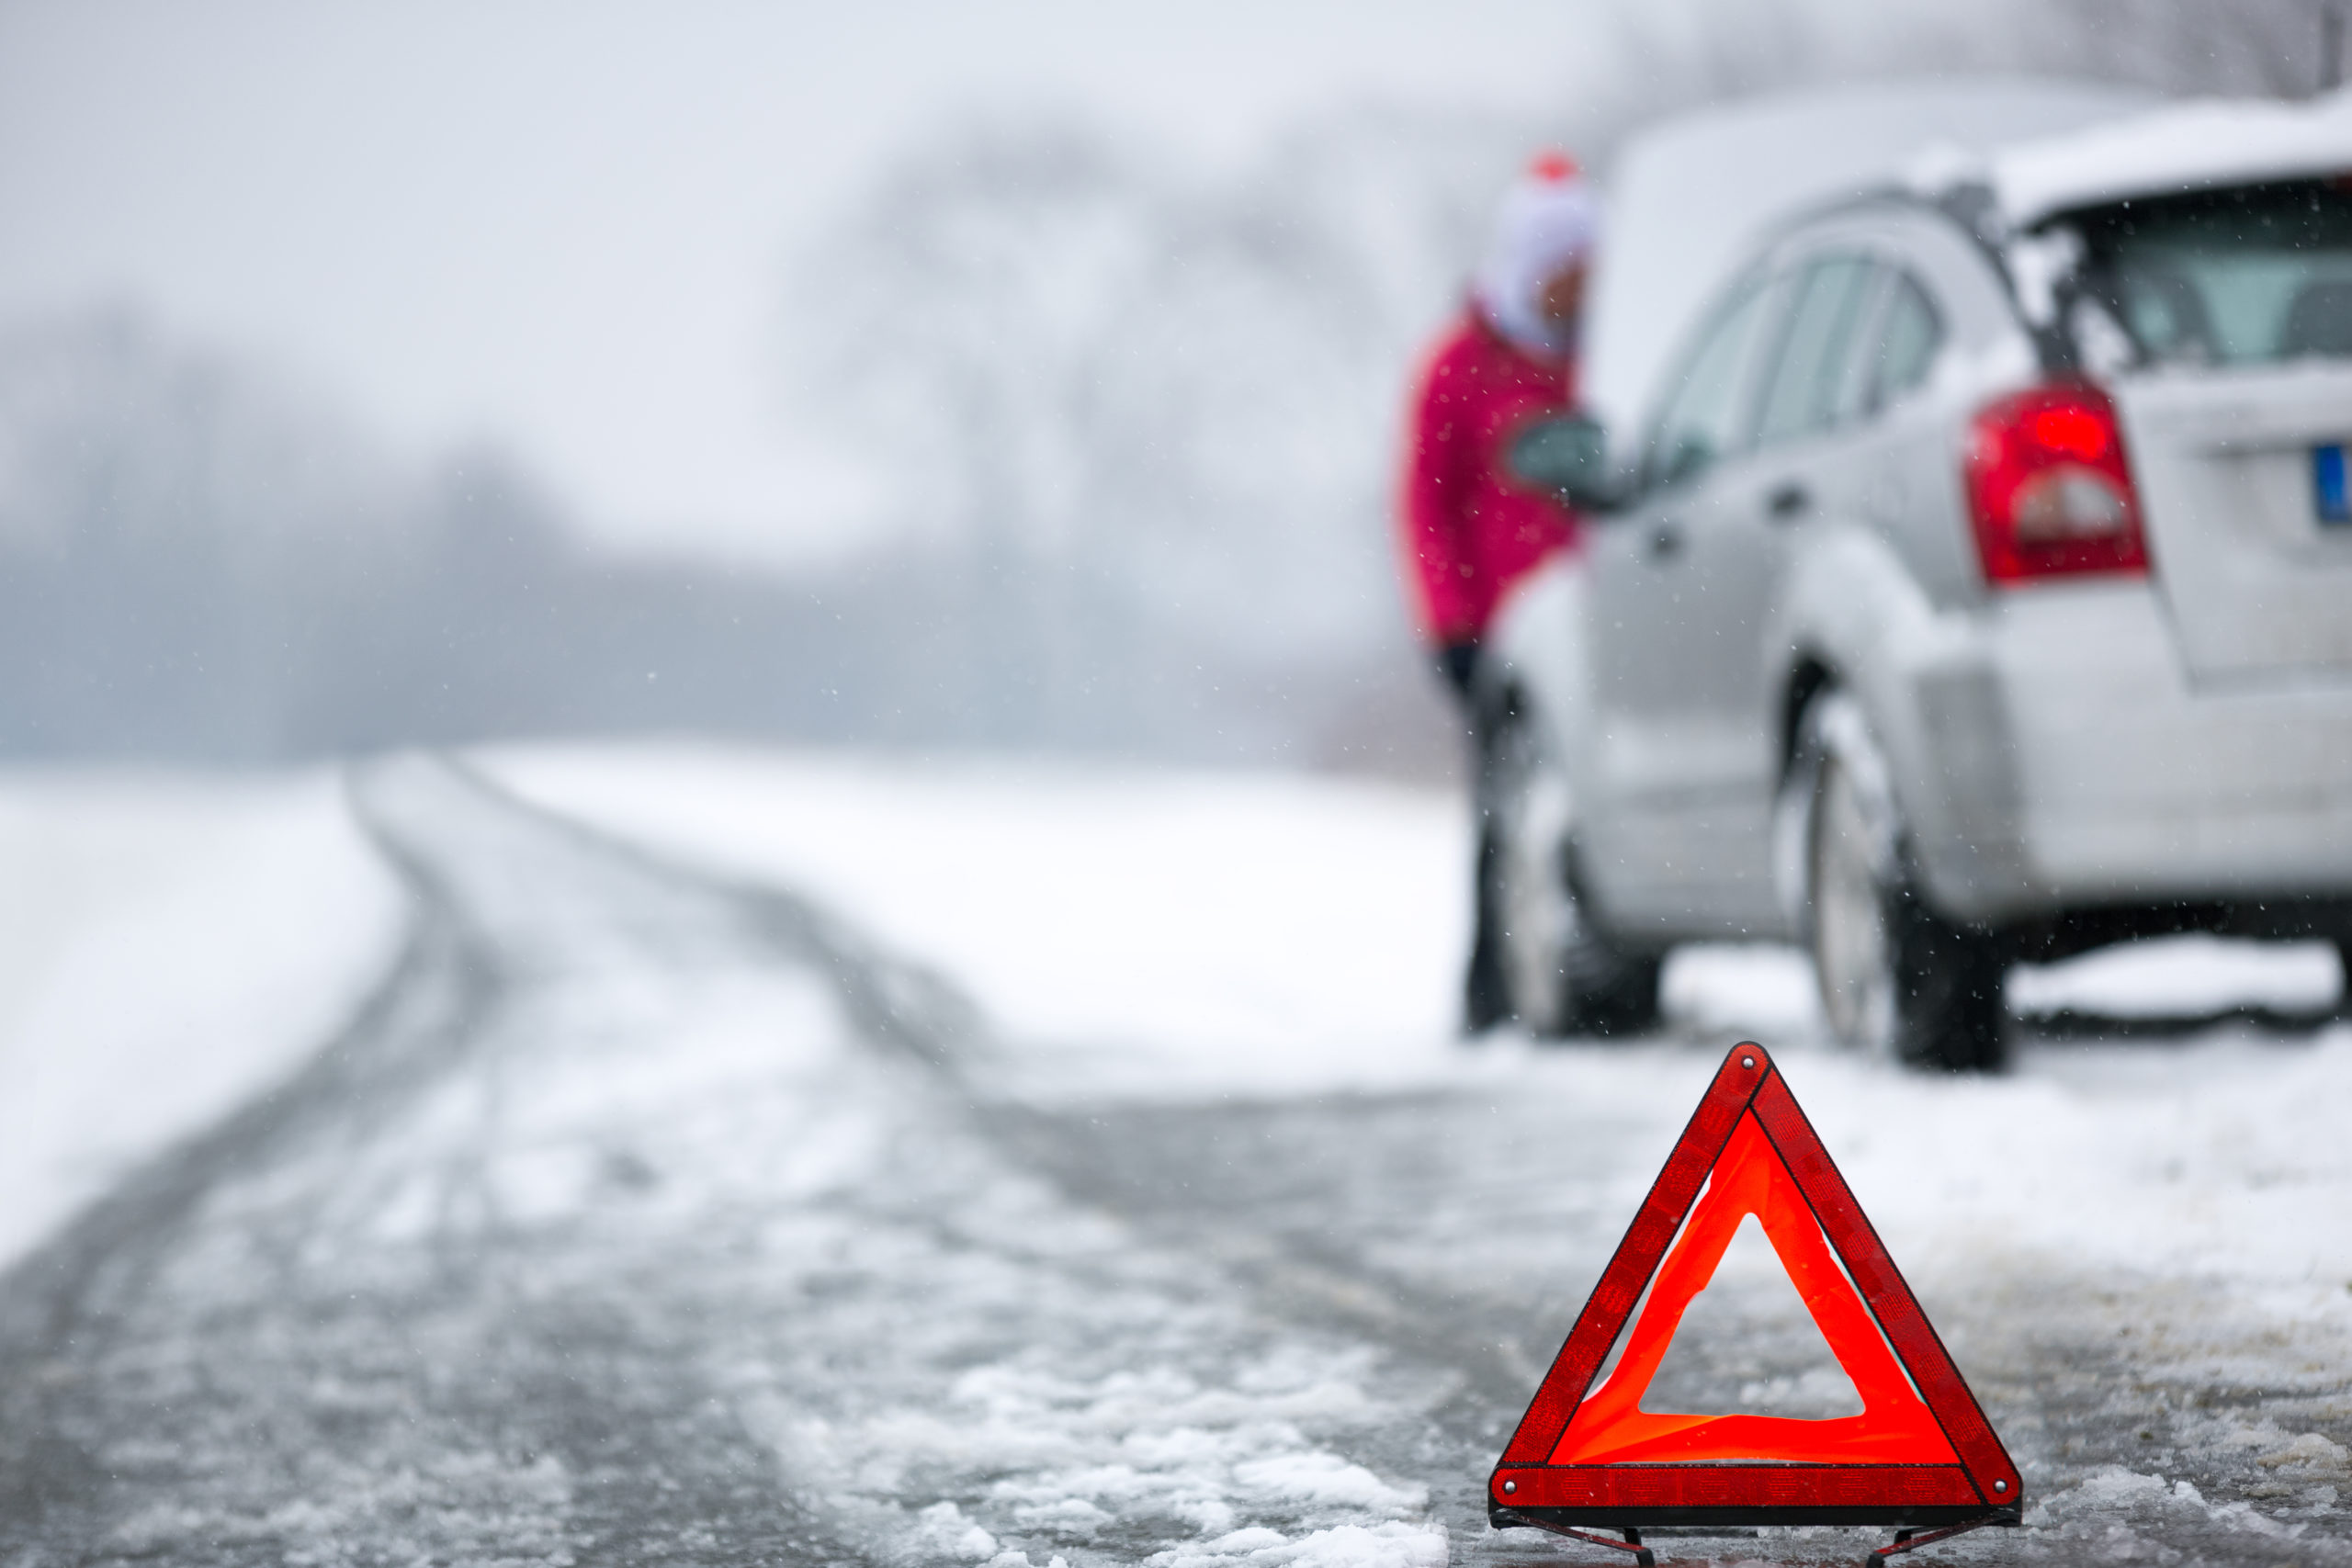 car on the side of a winter road with a warning pylon